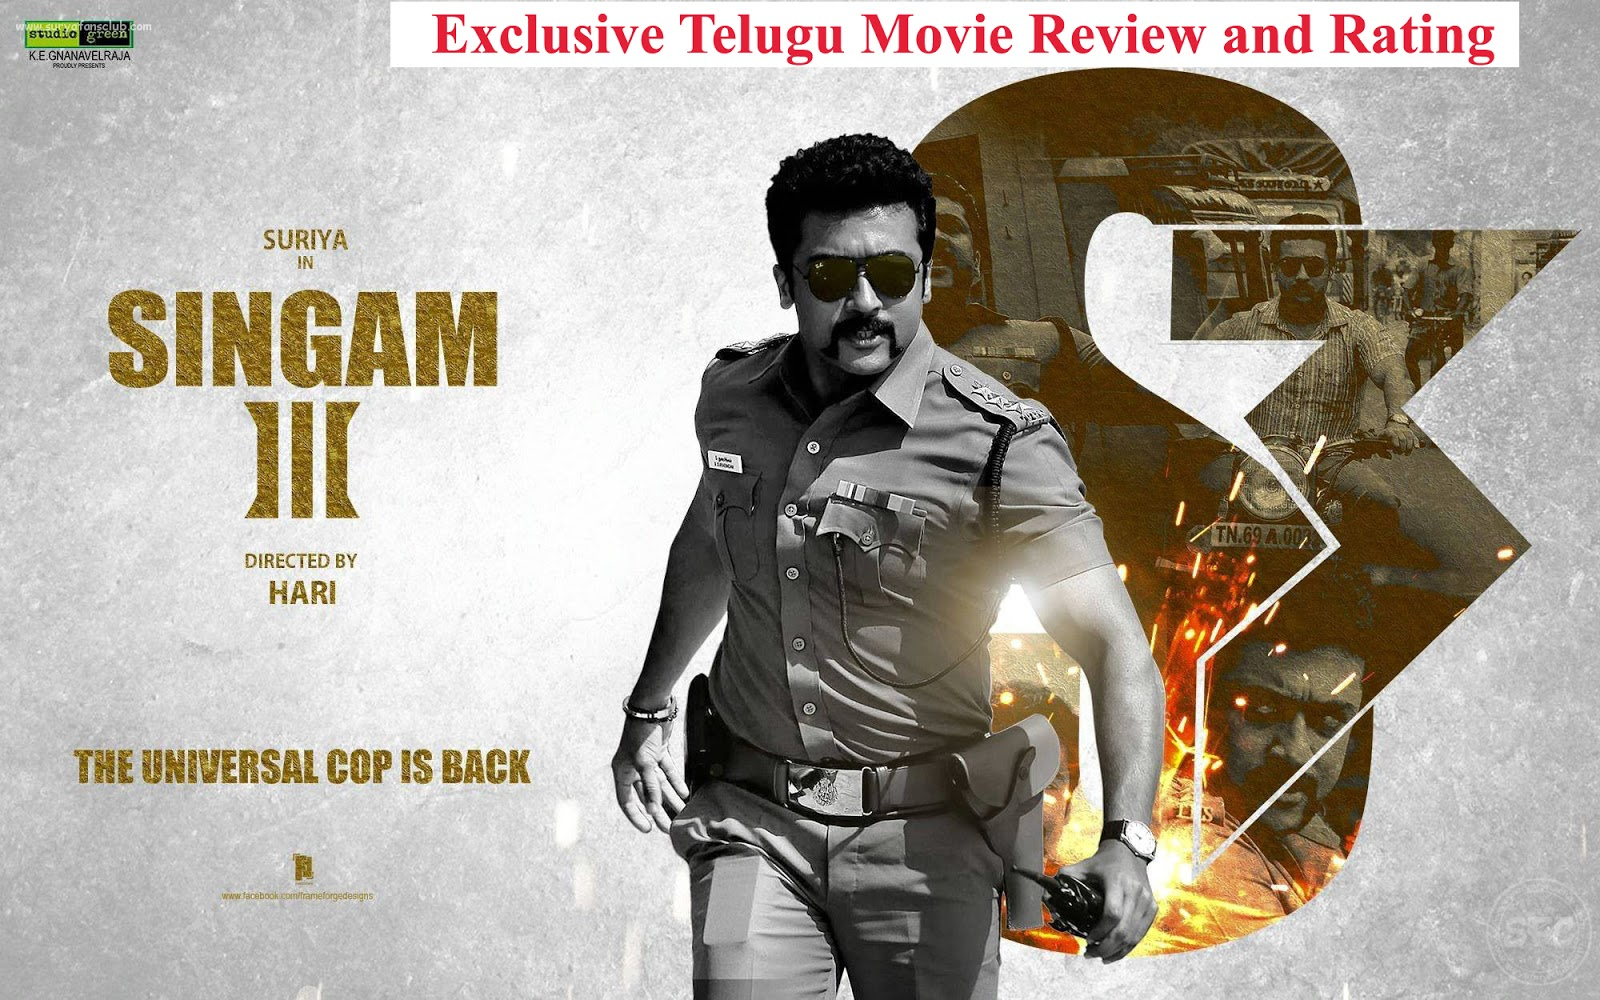 Exclusive surya singam 3 telugu movie review and rating telugu here is the complete info on surya singam3 telugu movie exclusive review and rating by industry critics thecheapjerseys Gallery